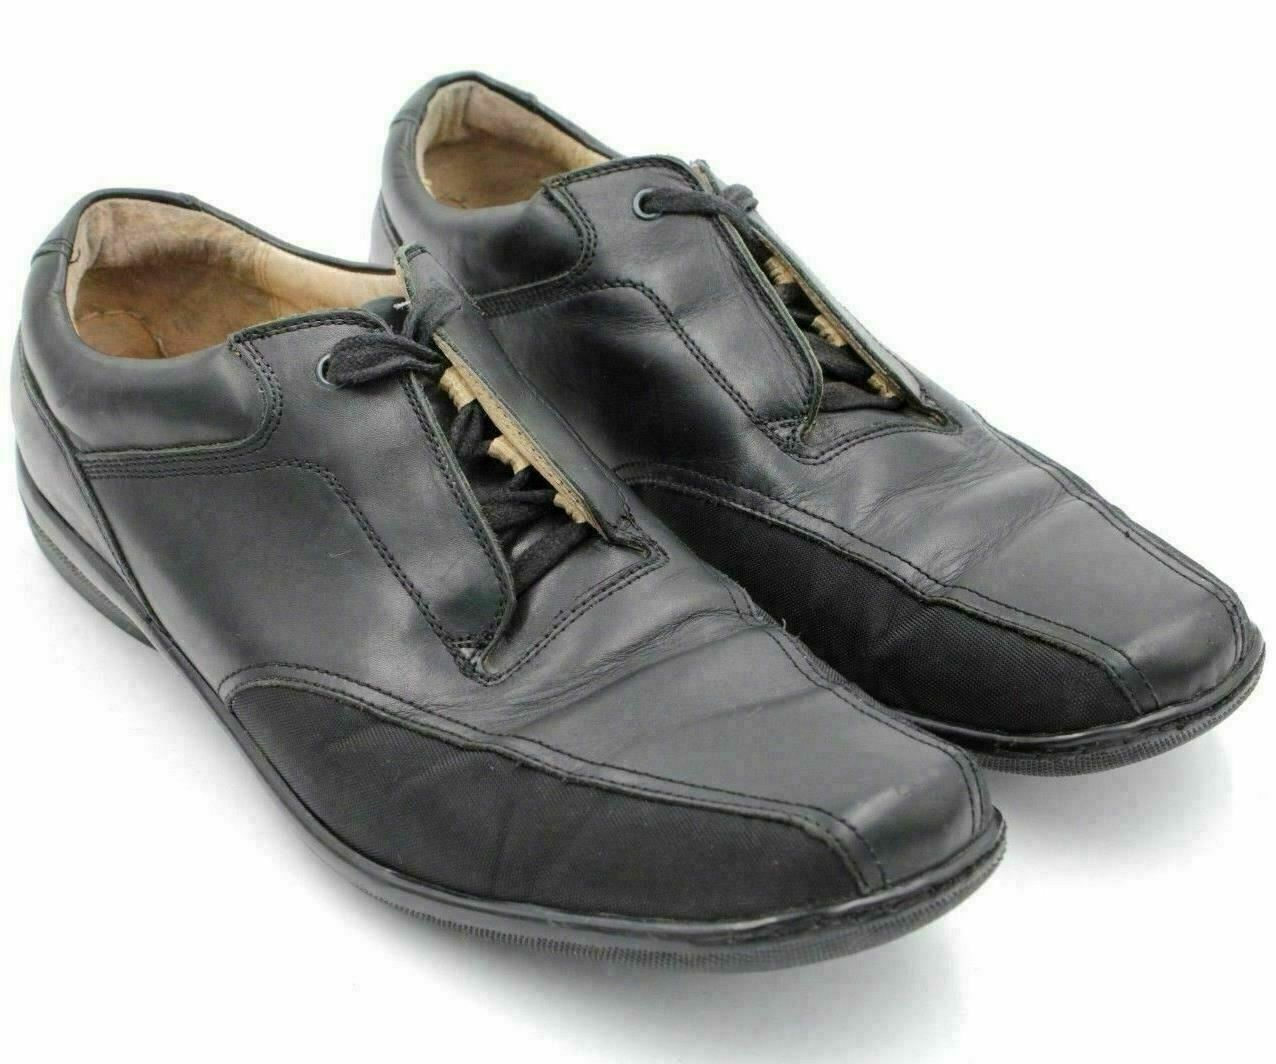 Kenneth Cole Men Casual Oxfords Side Glance US 11.5M Black Leather